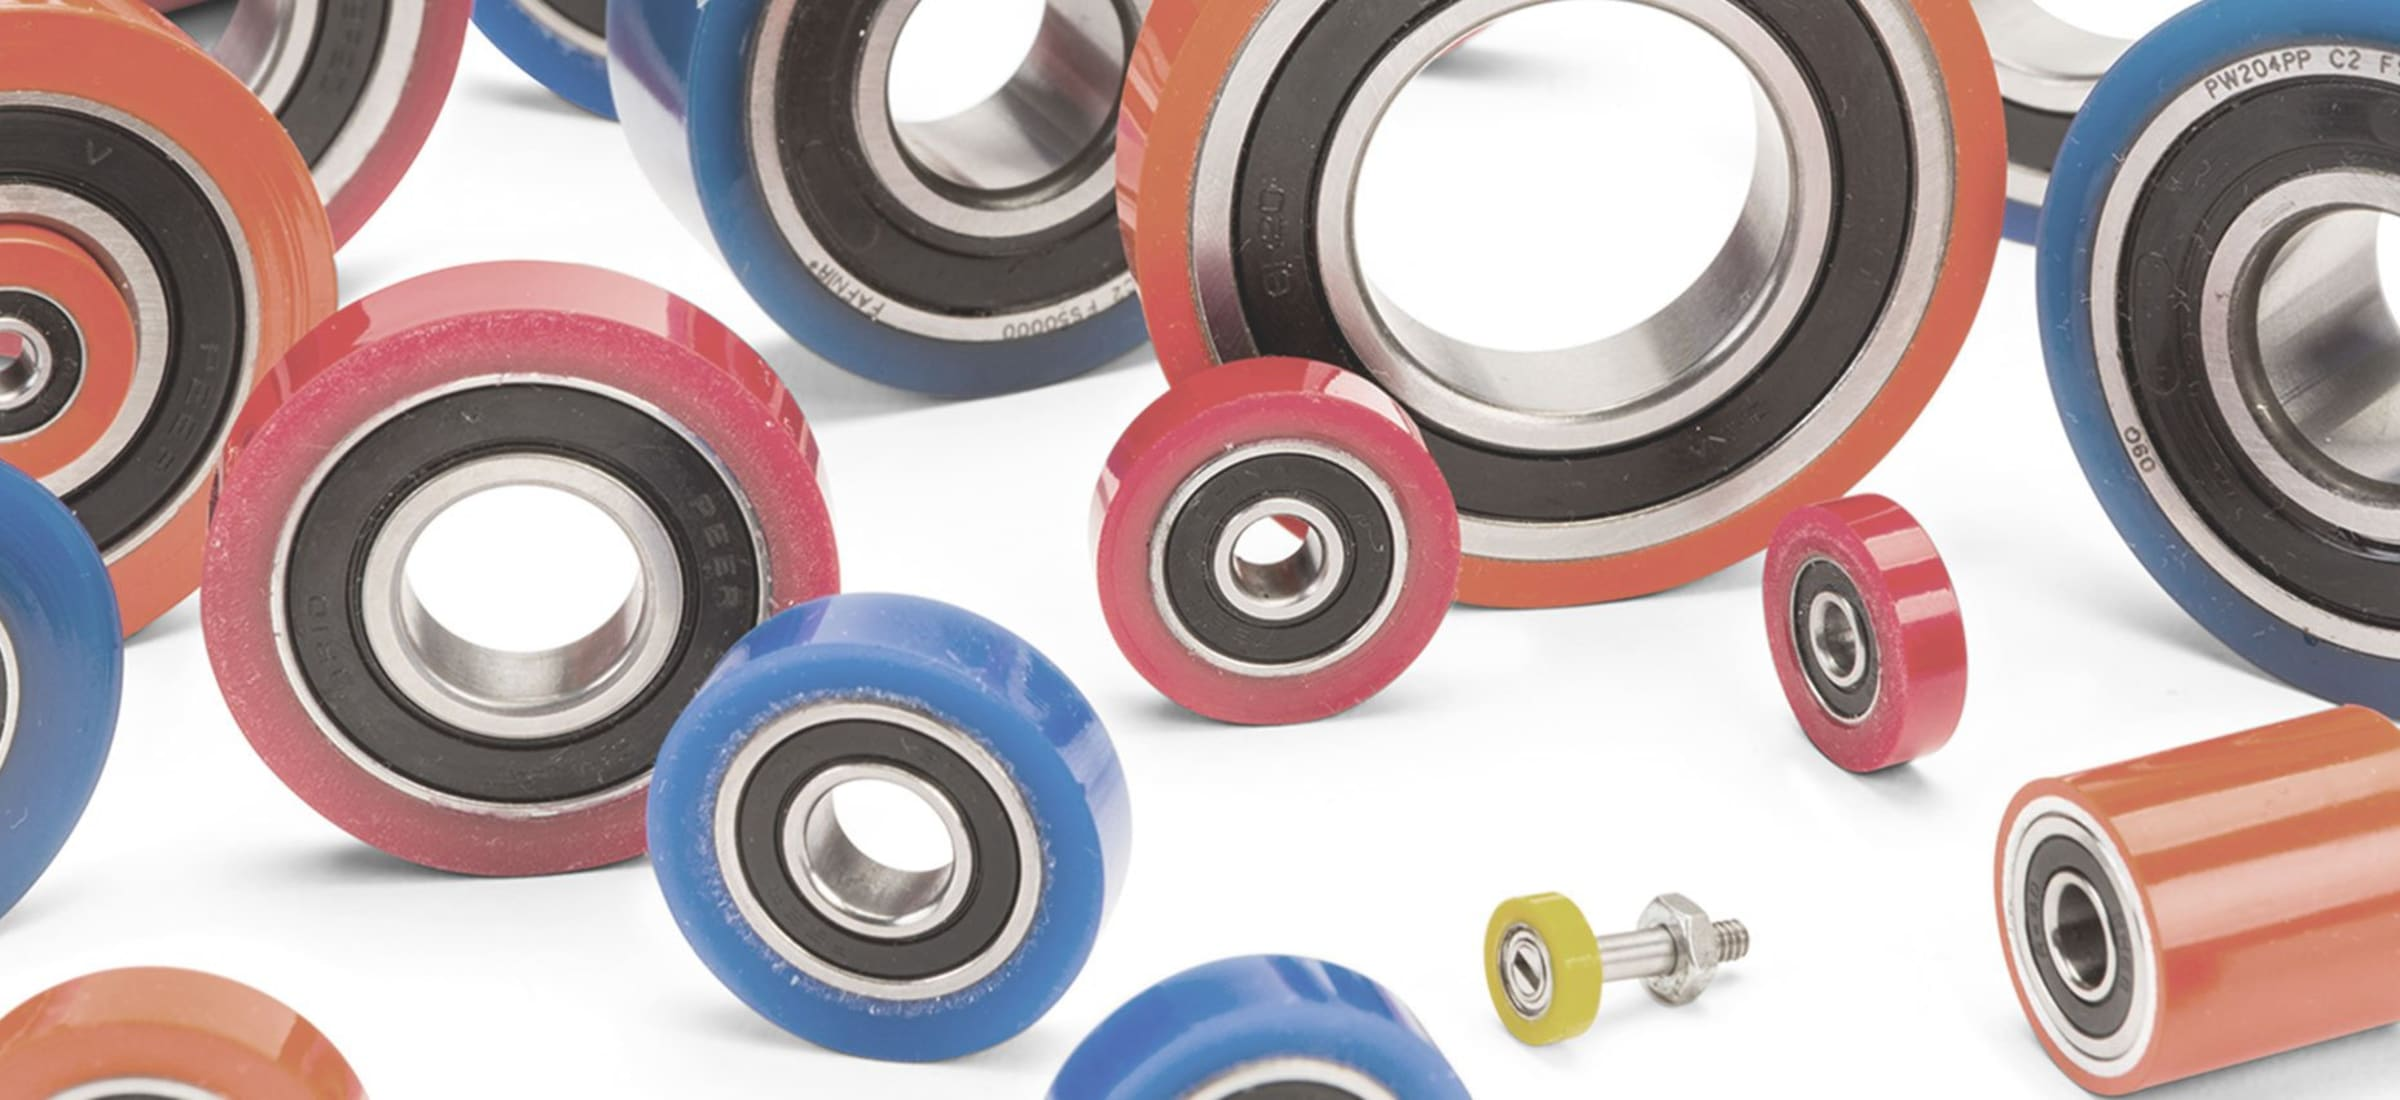 red blue and orange gear parts